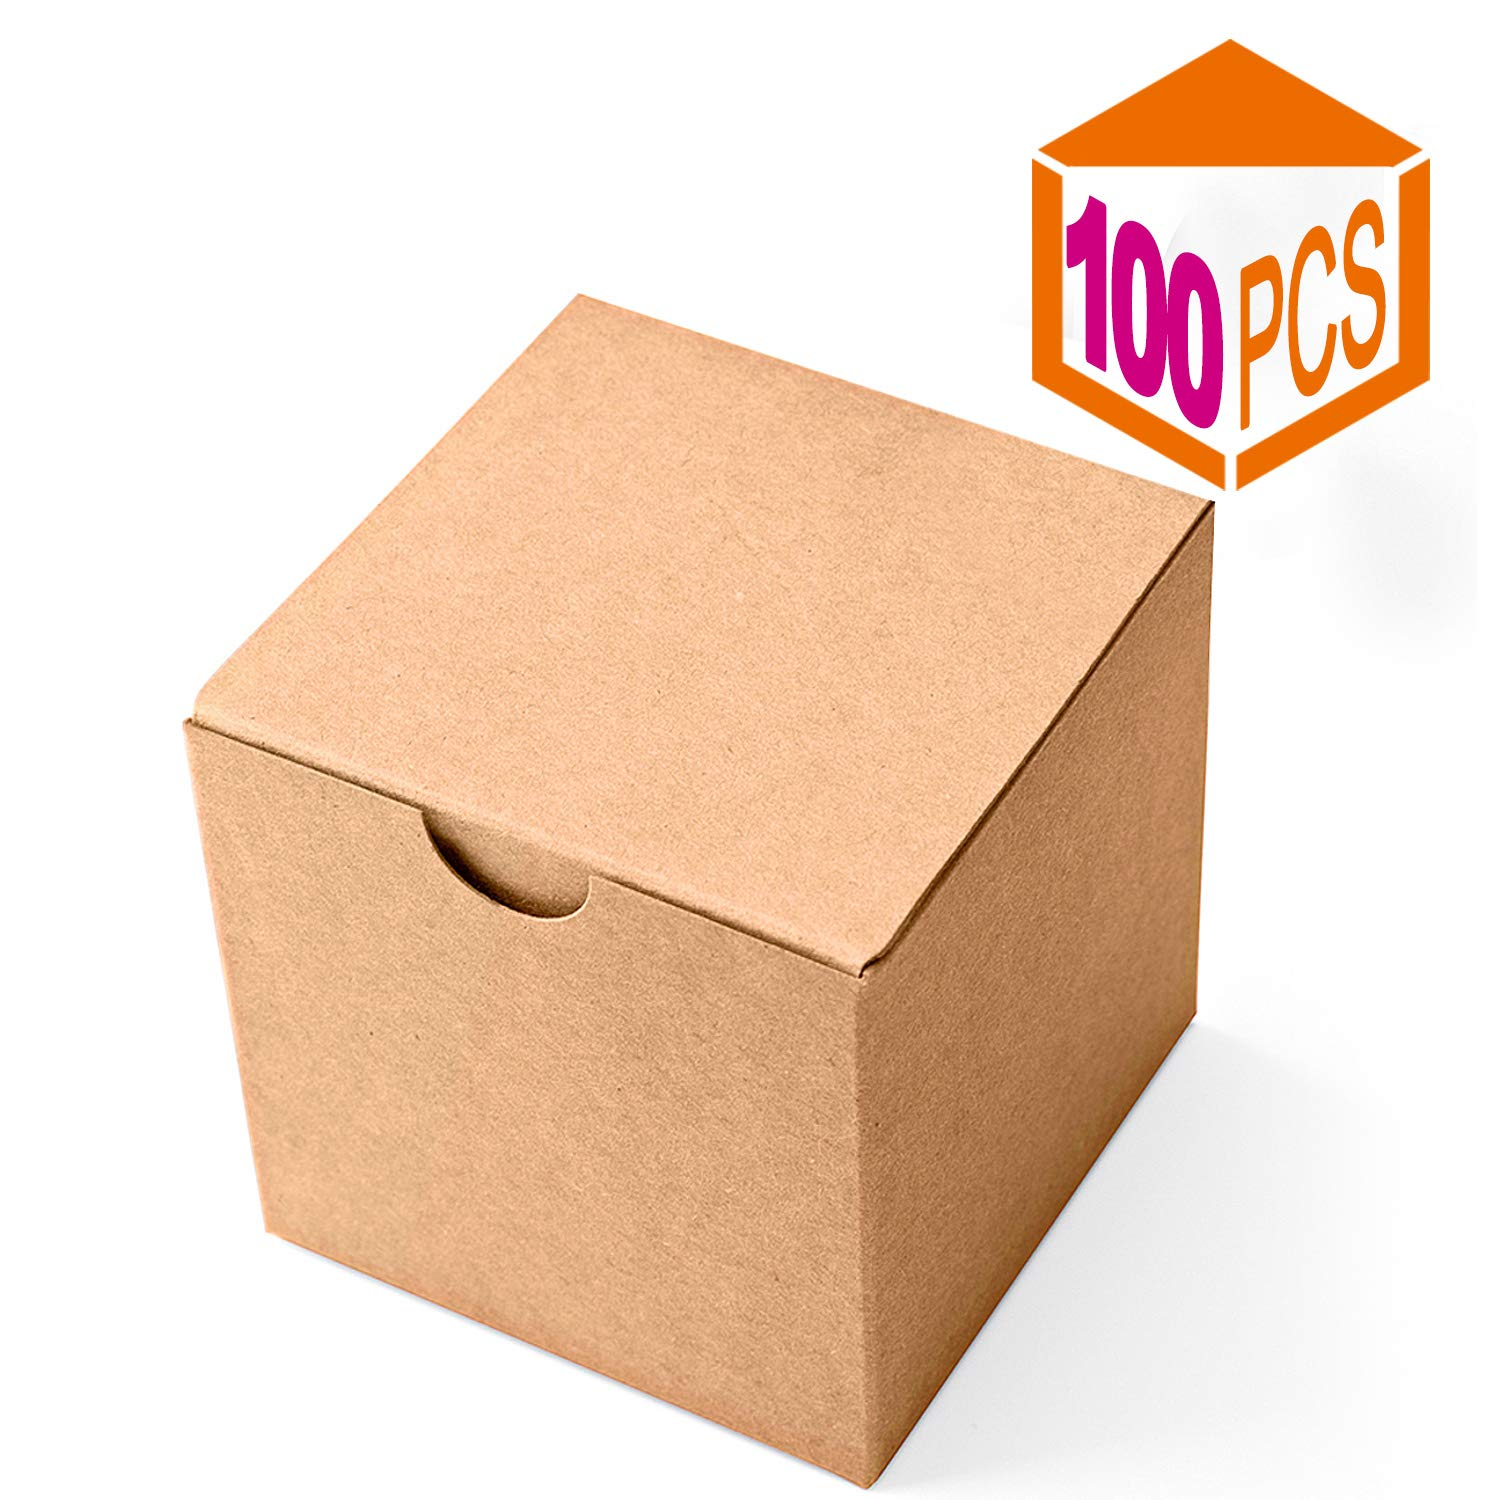 MESHA Gift Boxes 3 x 3 x 3 Inches Crafting Paper White Boxes with Lids for Gifts Cupcake Packaging Boxes Brown-100Pcs